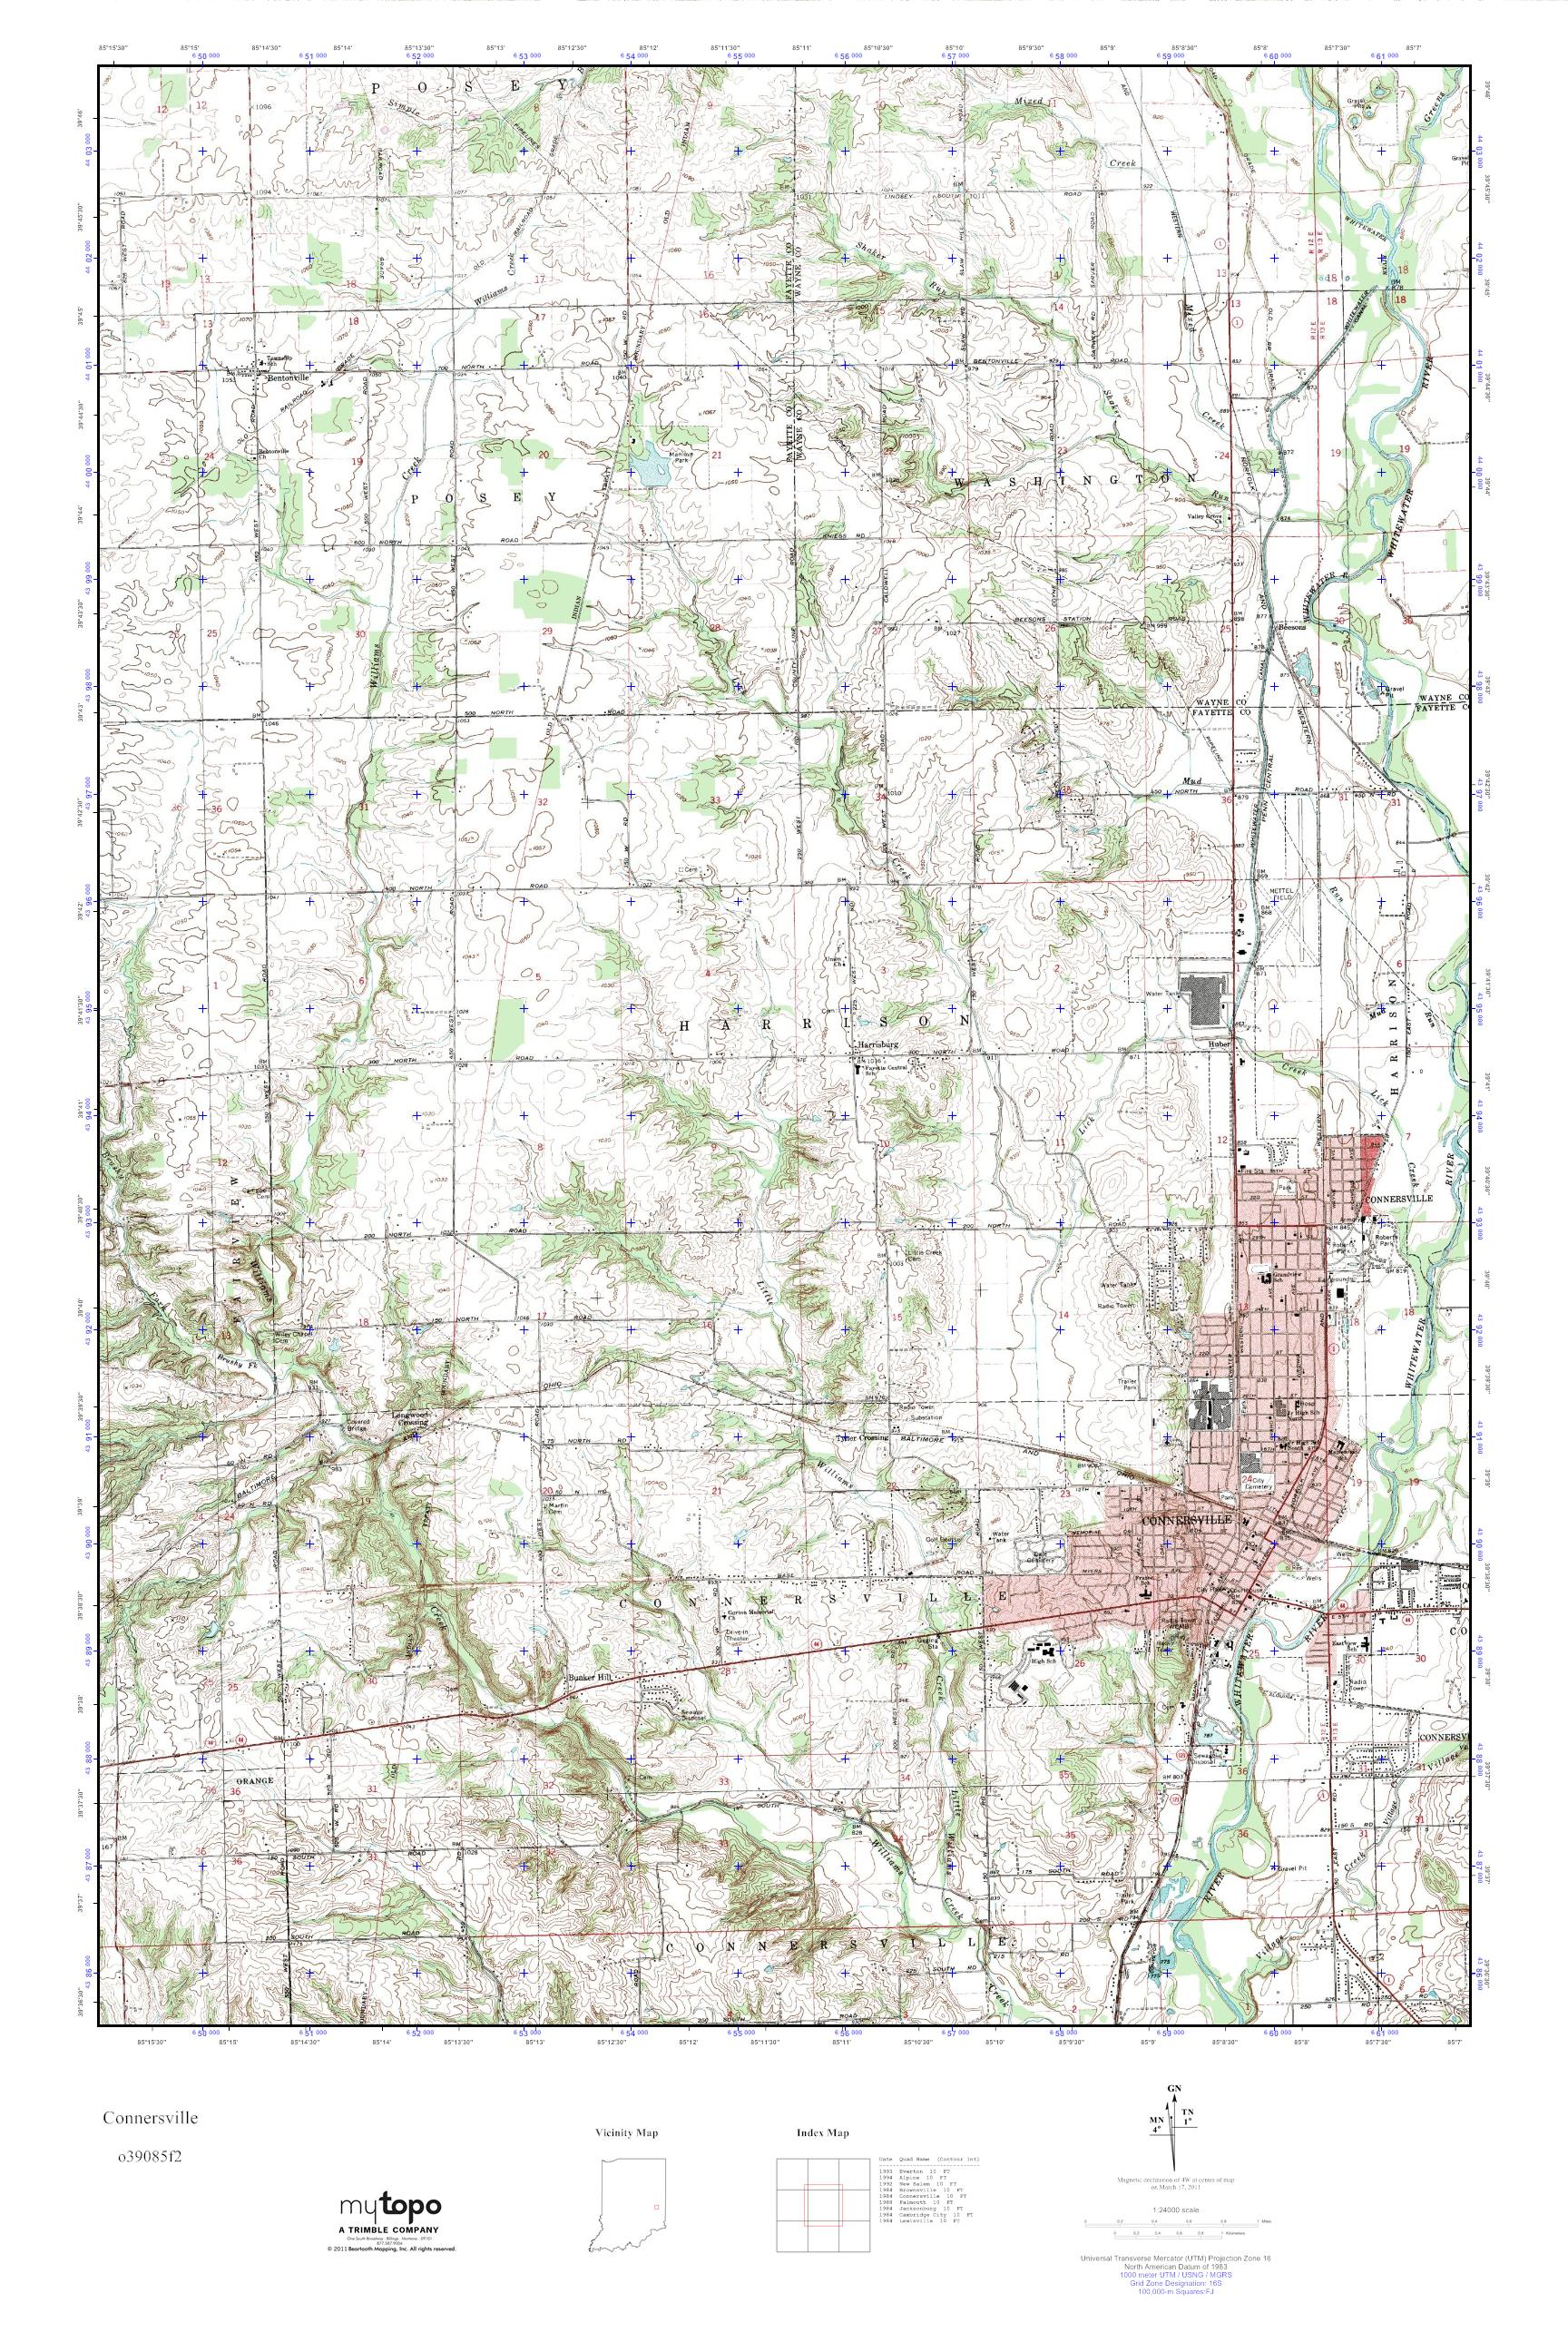 Mytopo Connersville Indiana Usgs Quad Topo Map